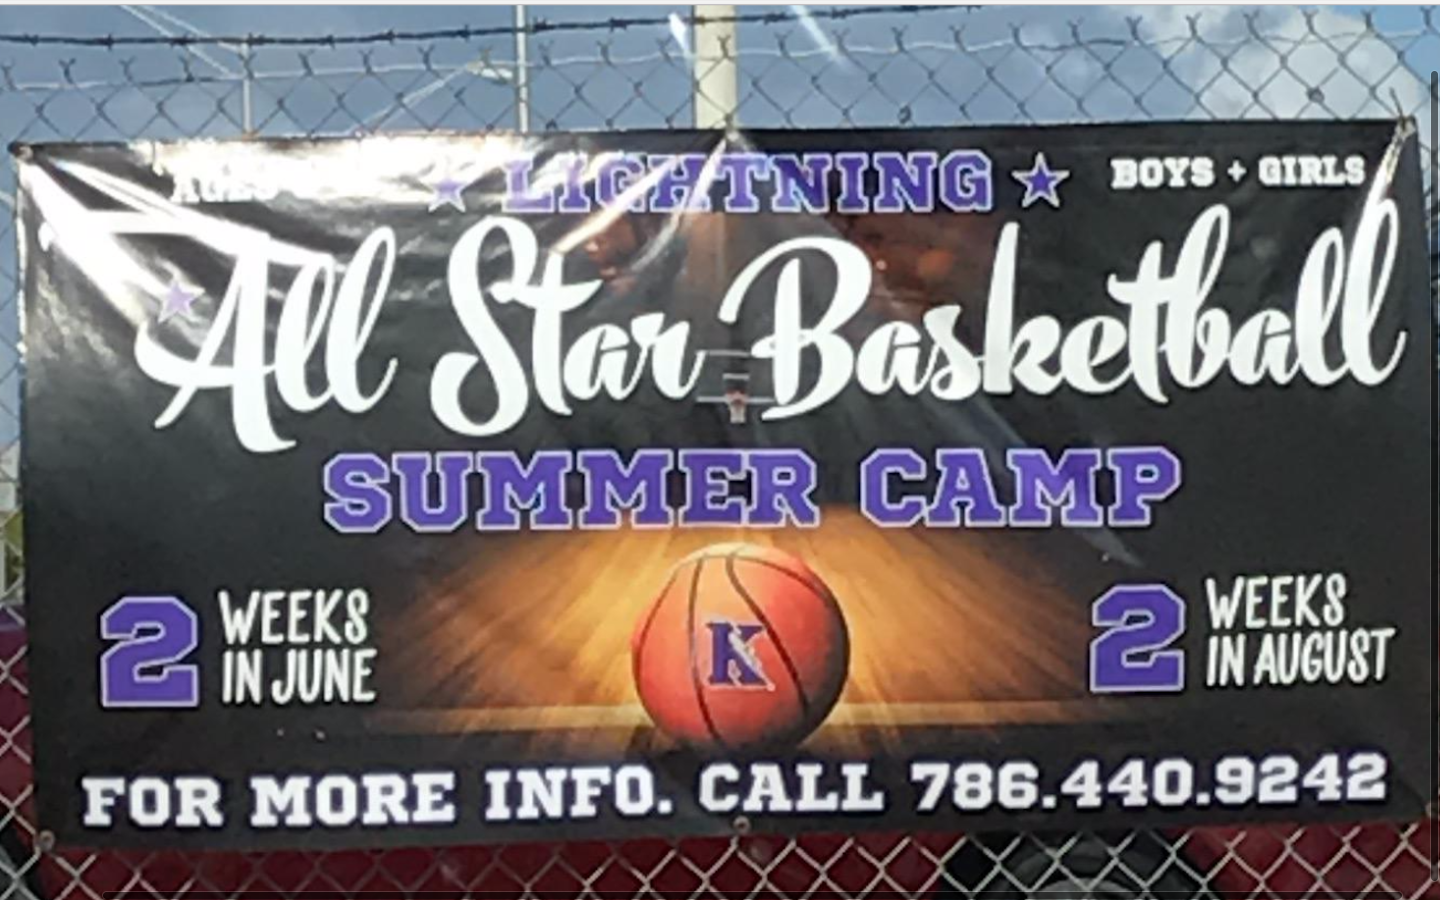 Coach Garcia's All Star Basketball camp